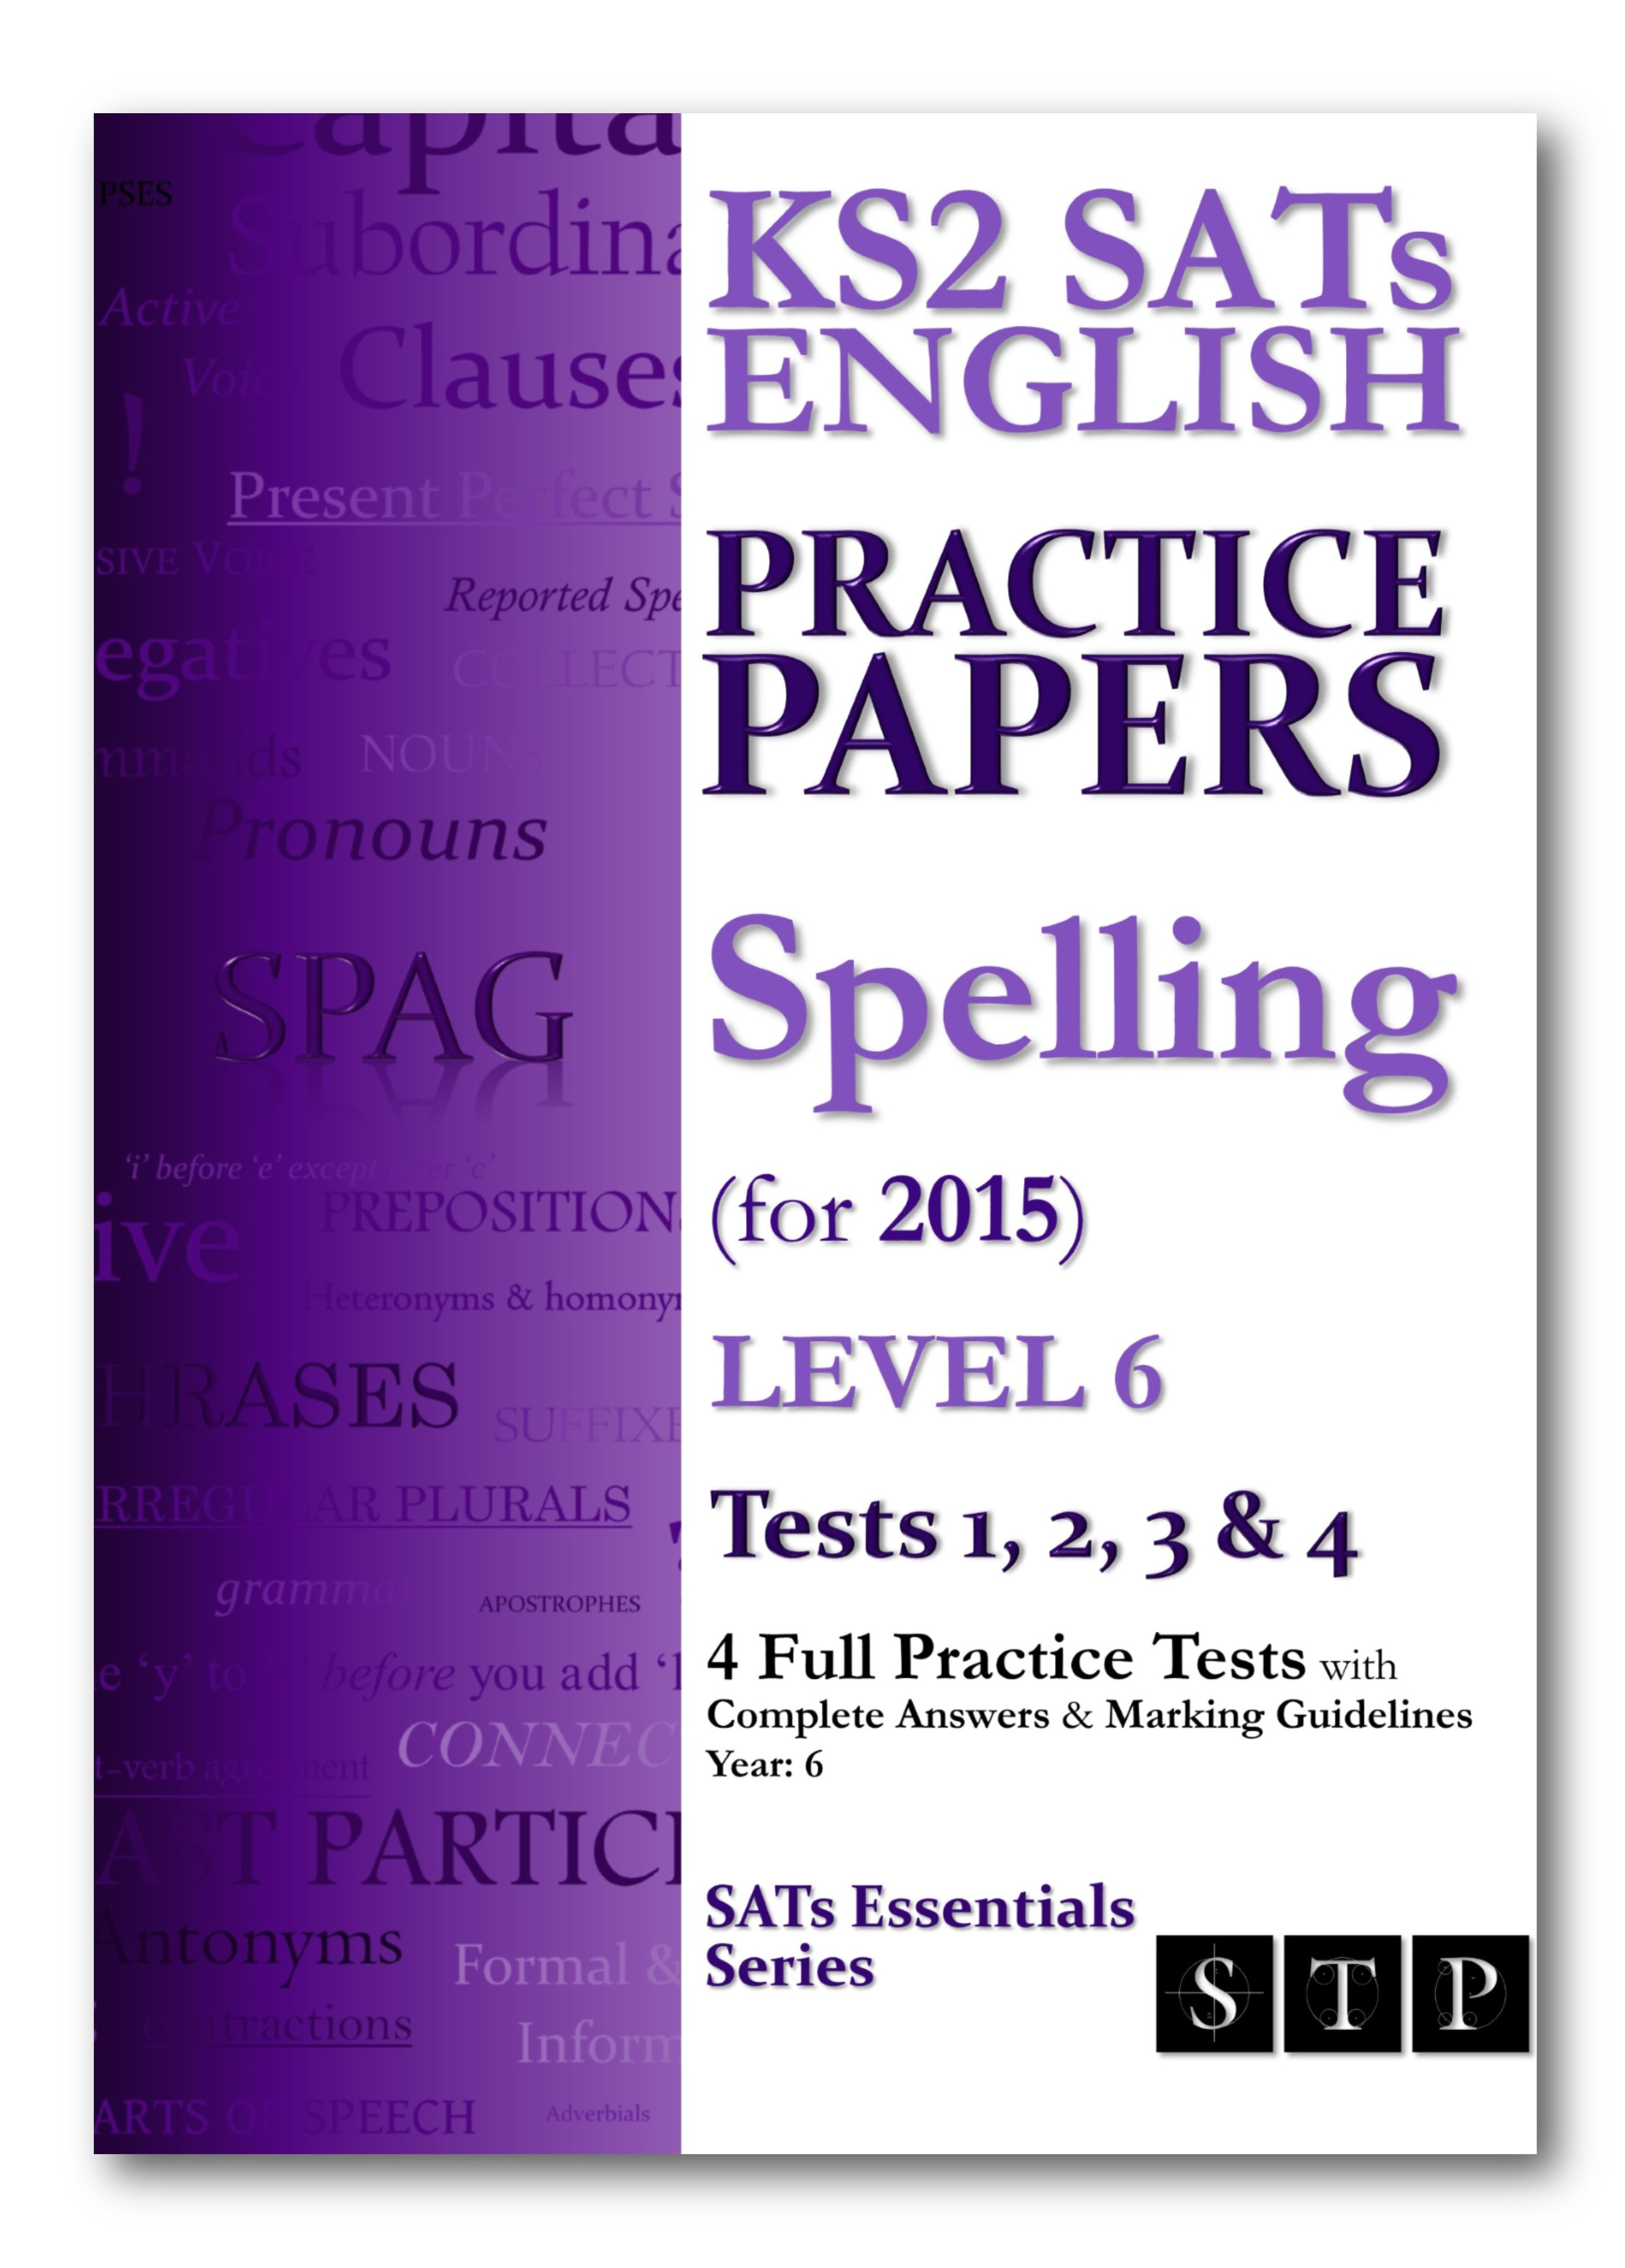 KS2 SATS Spelling Practice Papers Level 6 Tests 1, 2, 3 & 4